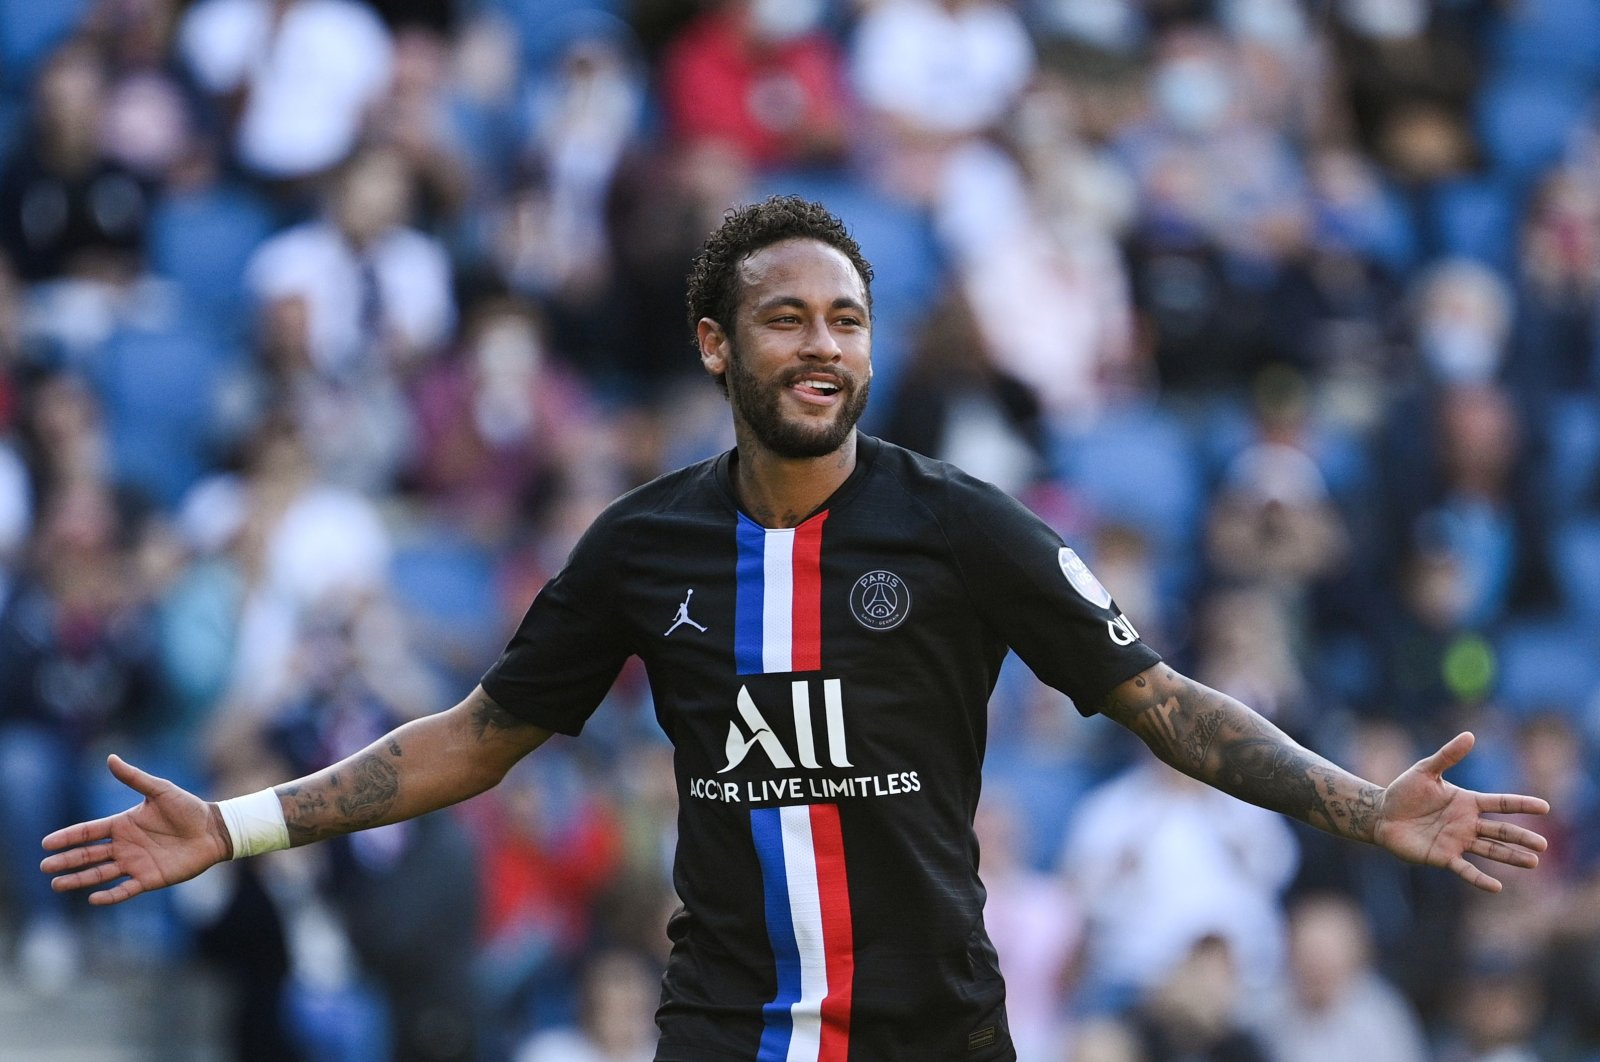 PSG's Neymar celebrates during a friendly match in Le Havre, France, July 12, 2020. (AFP Photo)